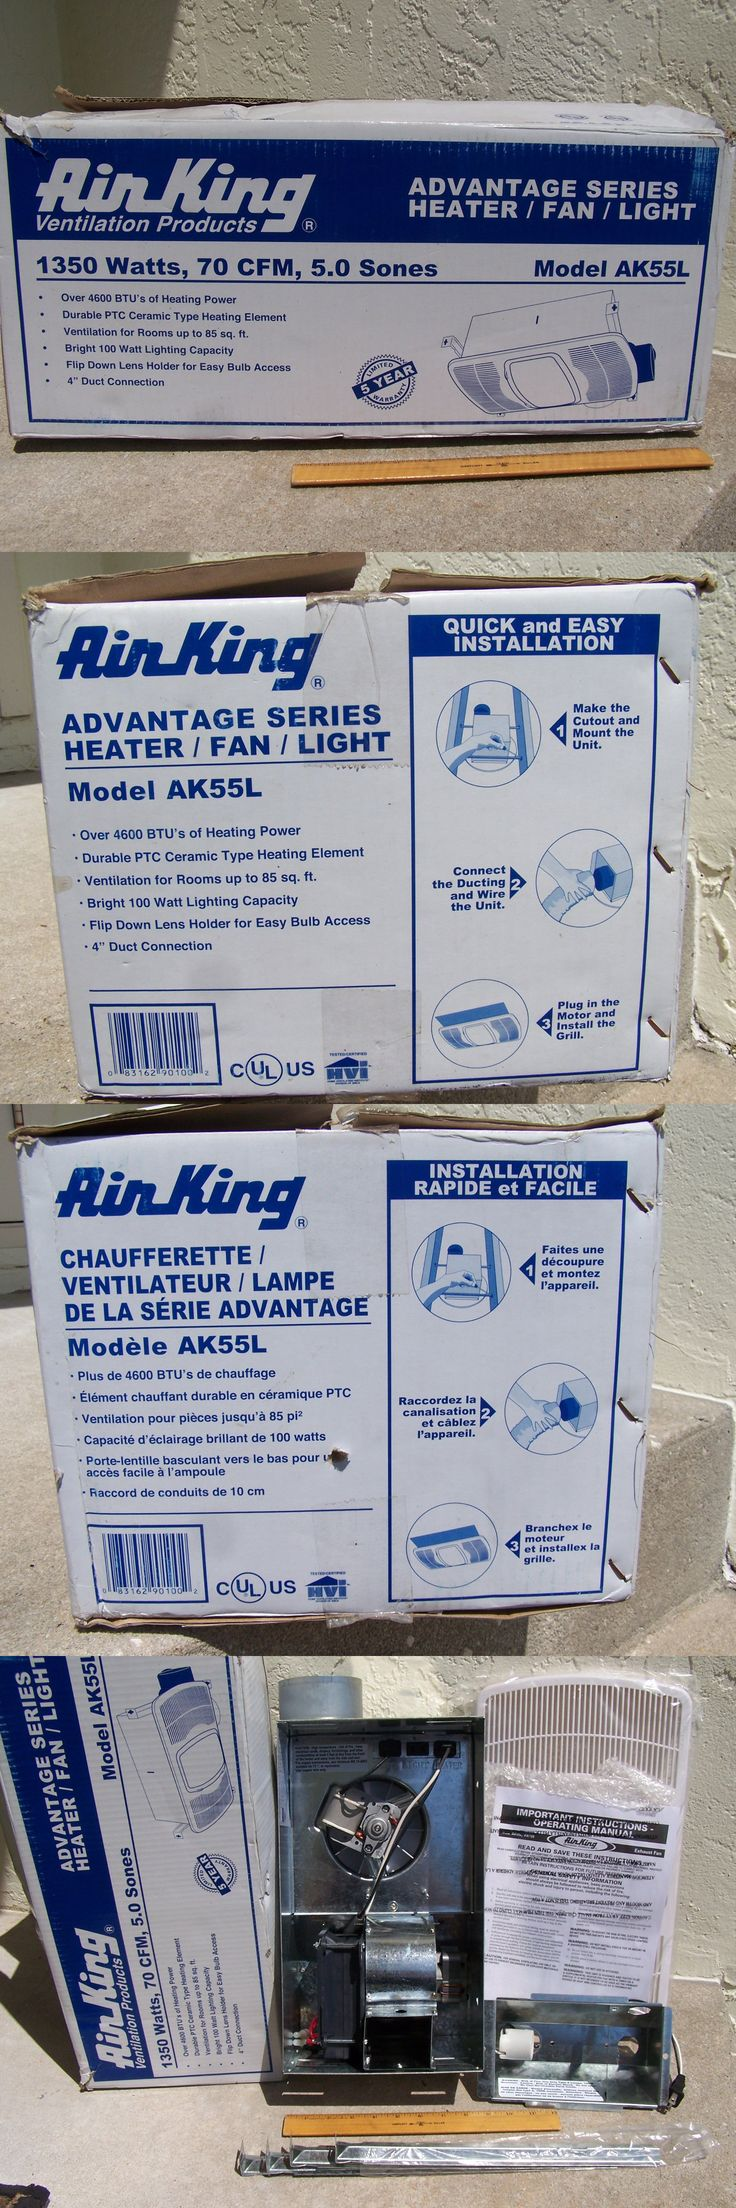 White ixl tastic neo single bathroom 3 in 1 heater exhaust and led - Space Heaters 20613 Air King Ak55l 70cfm Bathroom Heater Exhaust Fan And Light